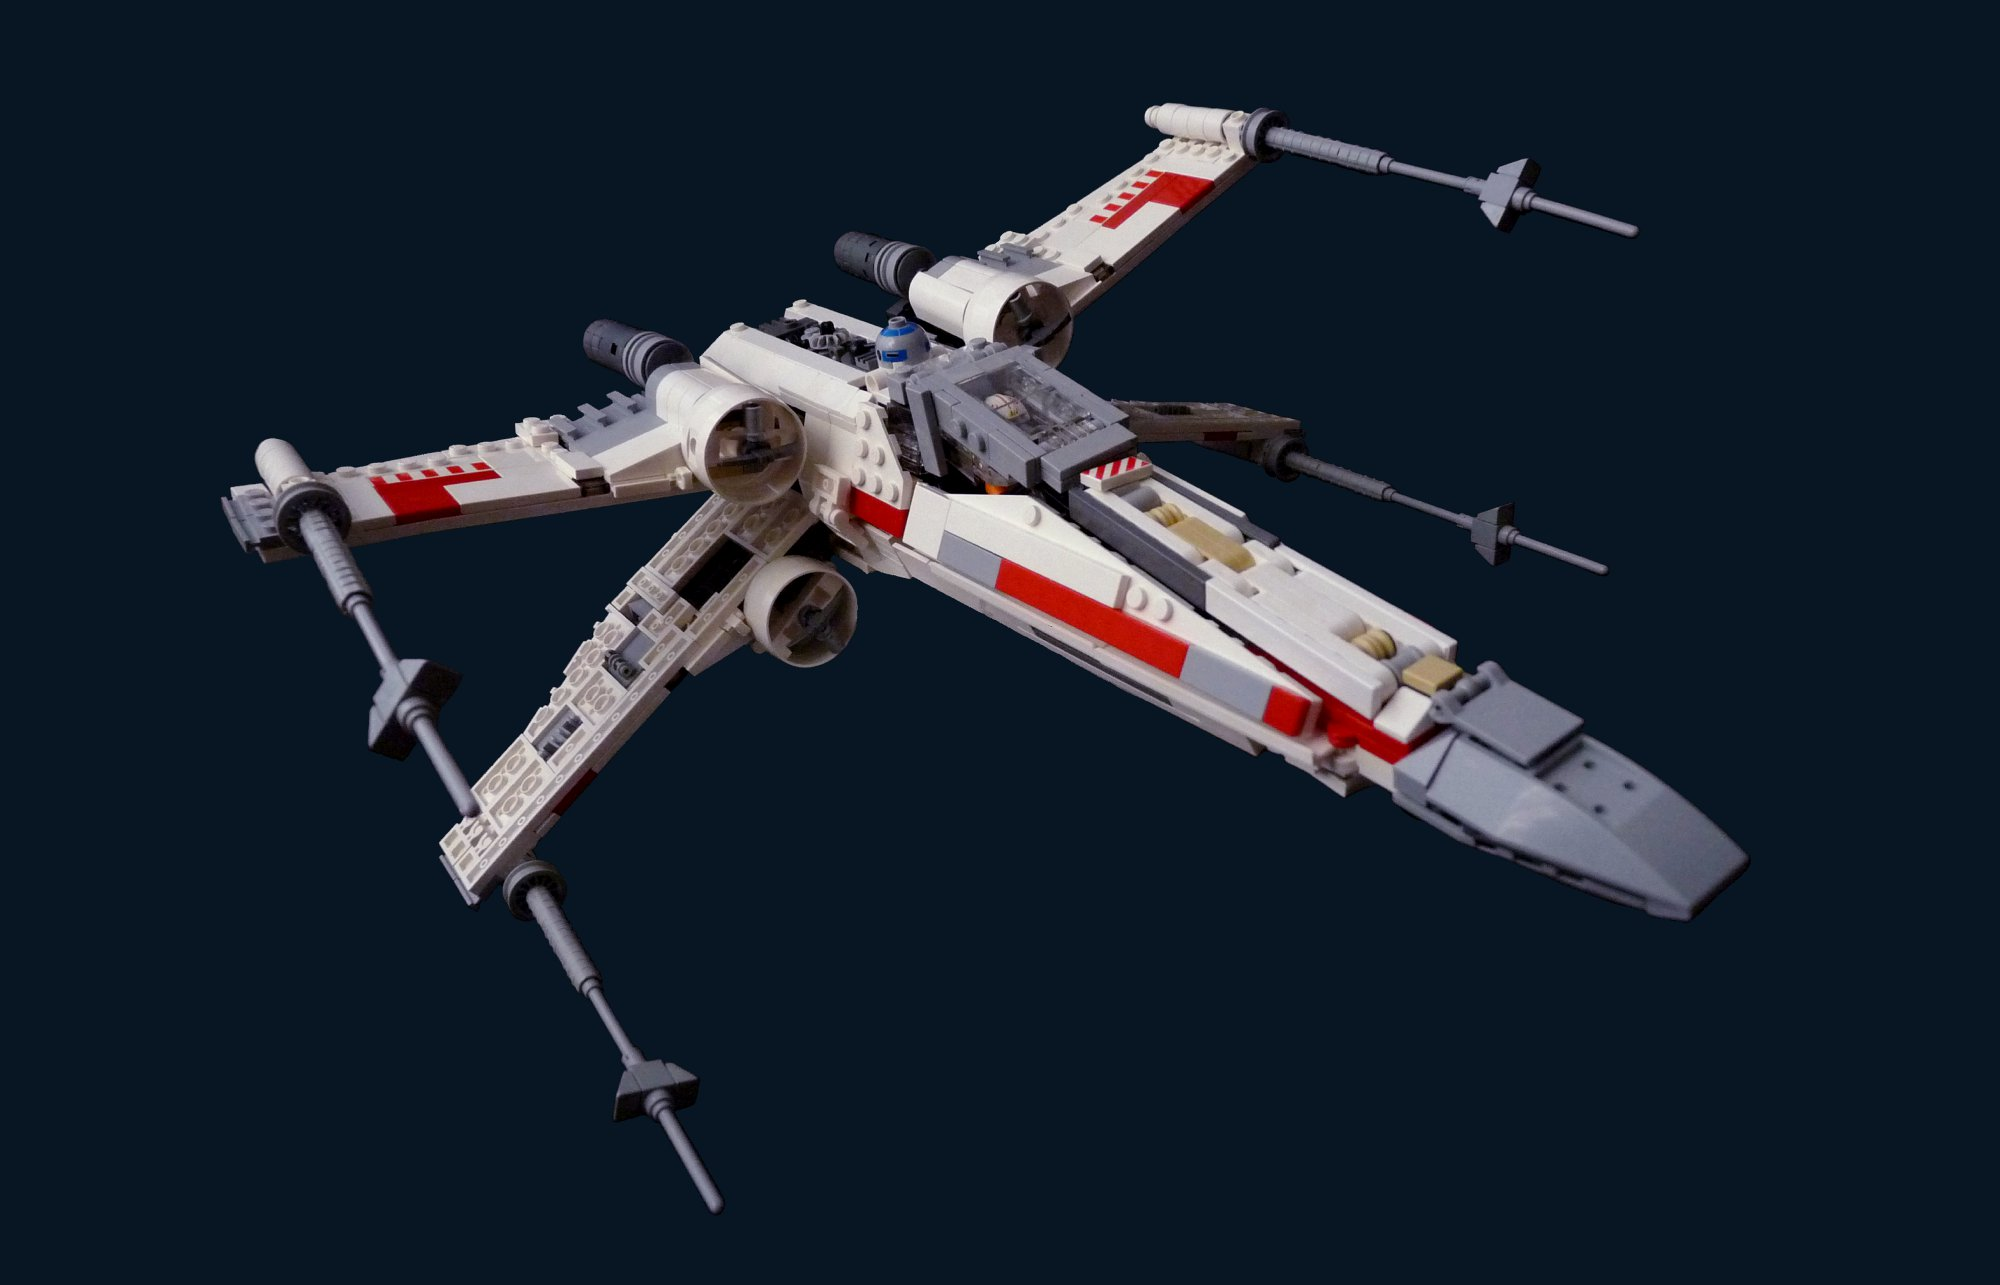 One of the most well-known starfighters in the galaxy, the x-wing forms the backbone of the rebel fleet